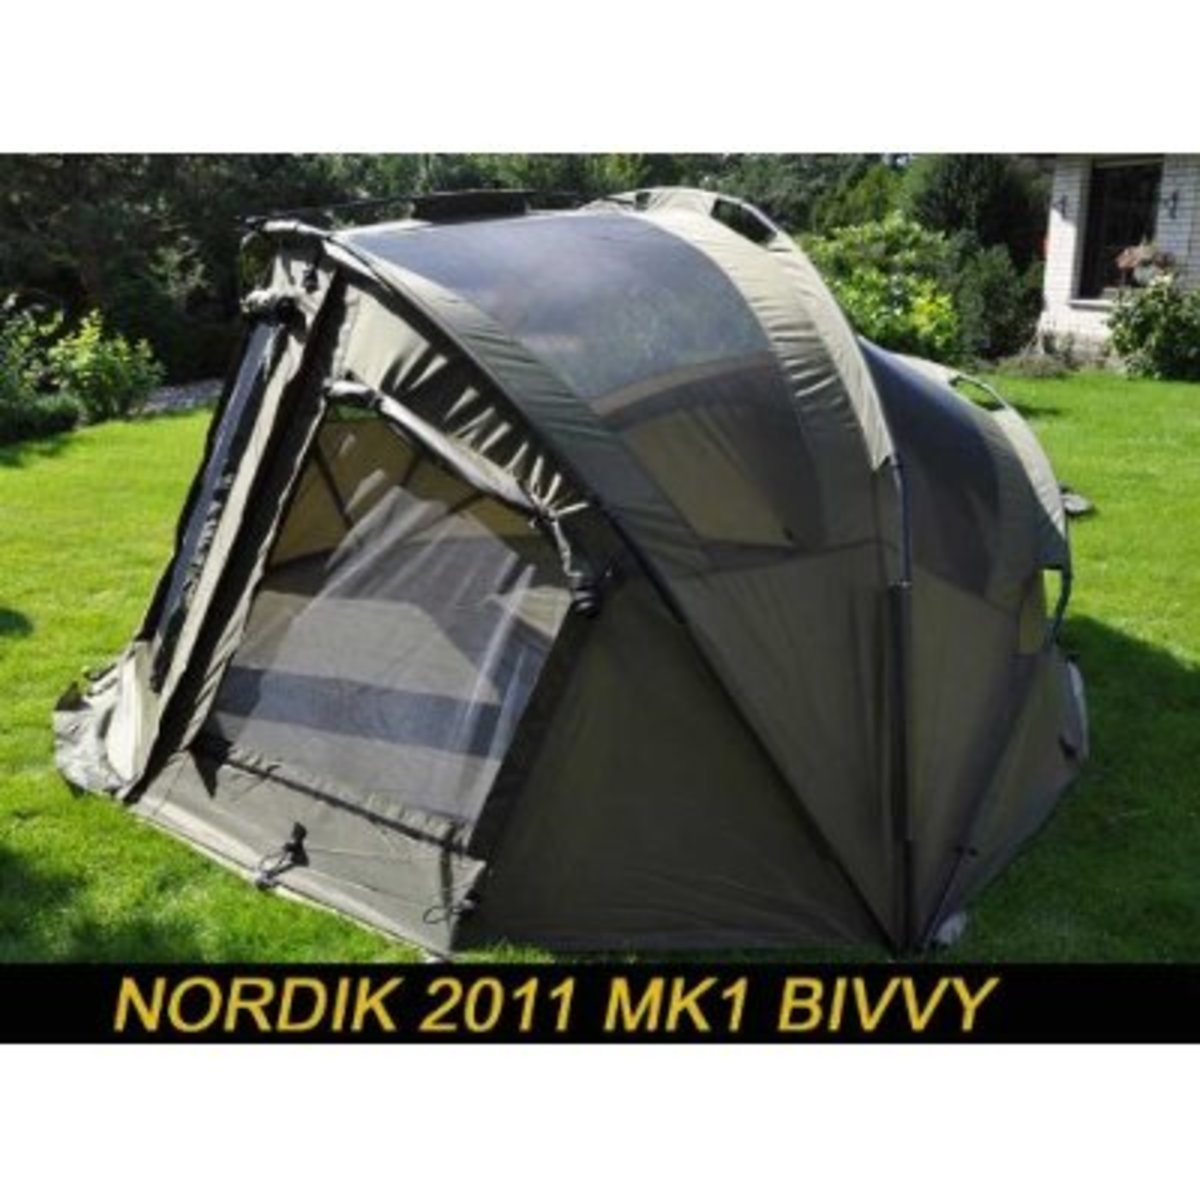 The Nordic Two Man Bivvy